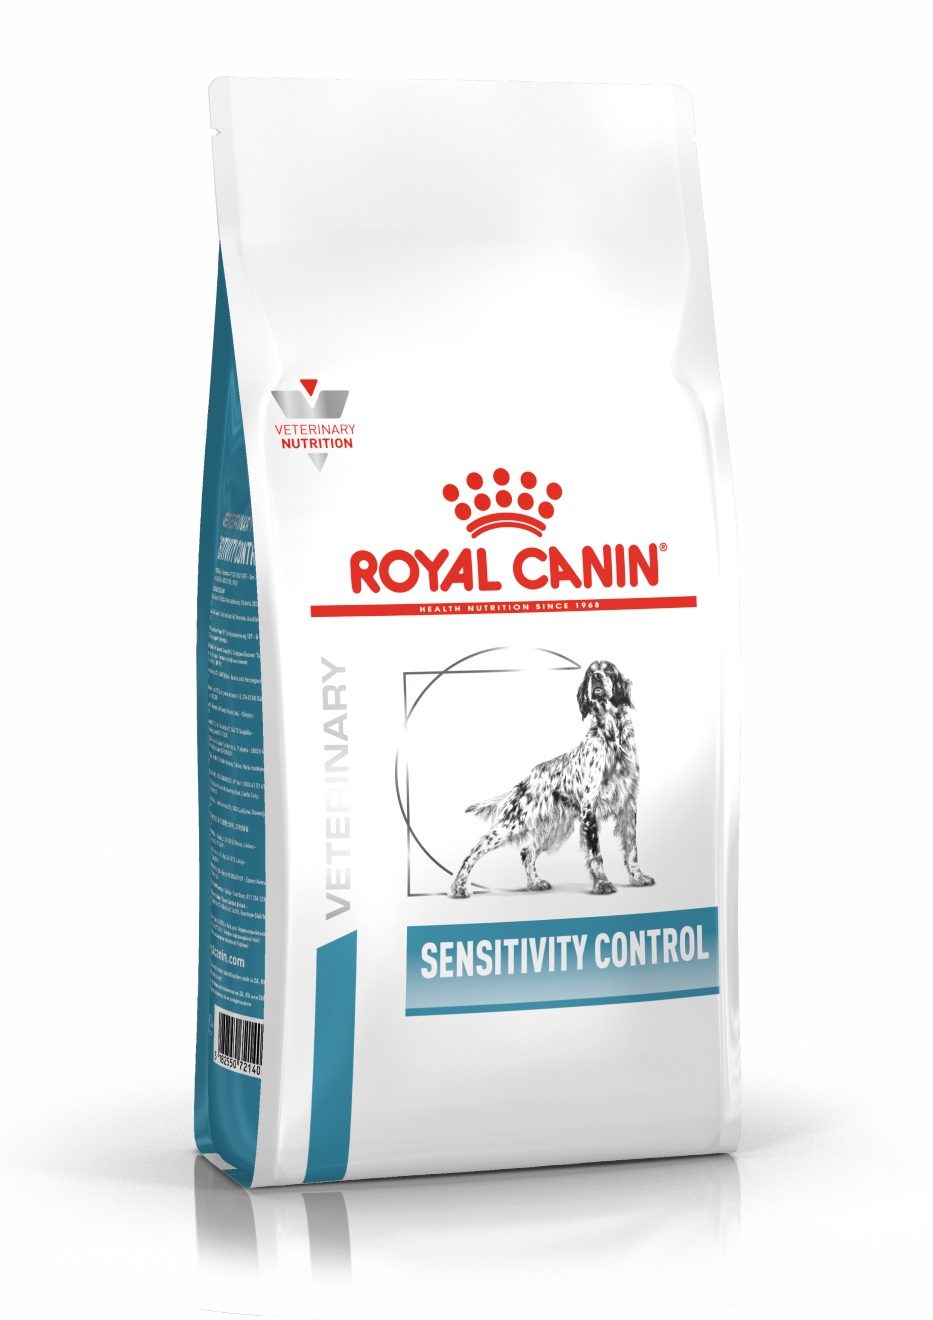 Royal Canin Sensitivity Control Food For Dogs With Food Allergies, 14 Kg